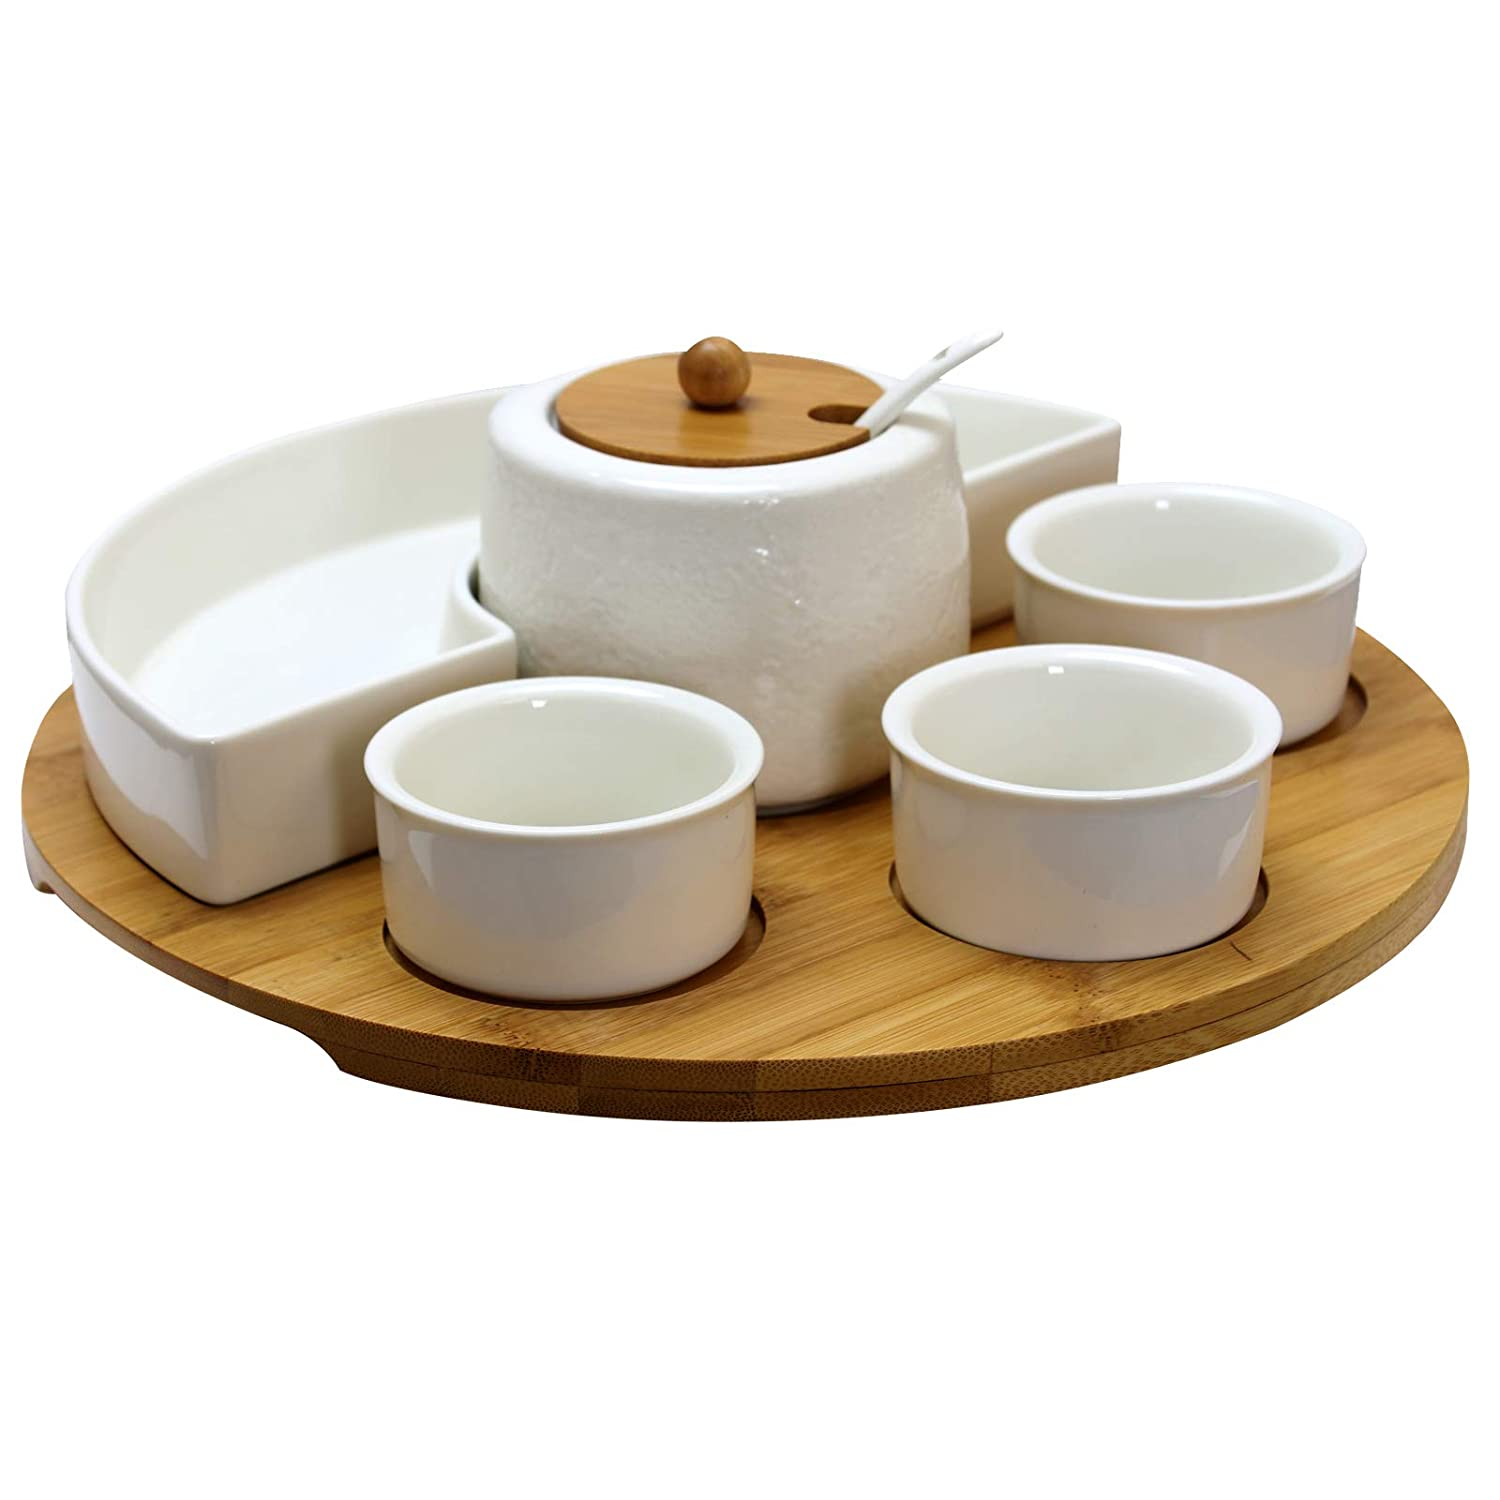 and Bamboo Serving Tray White Center Condiment Server Spoon Elama EL-159 Signature 8 Piece Appetizer Set with 4 Dishes